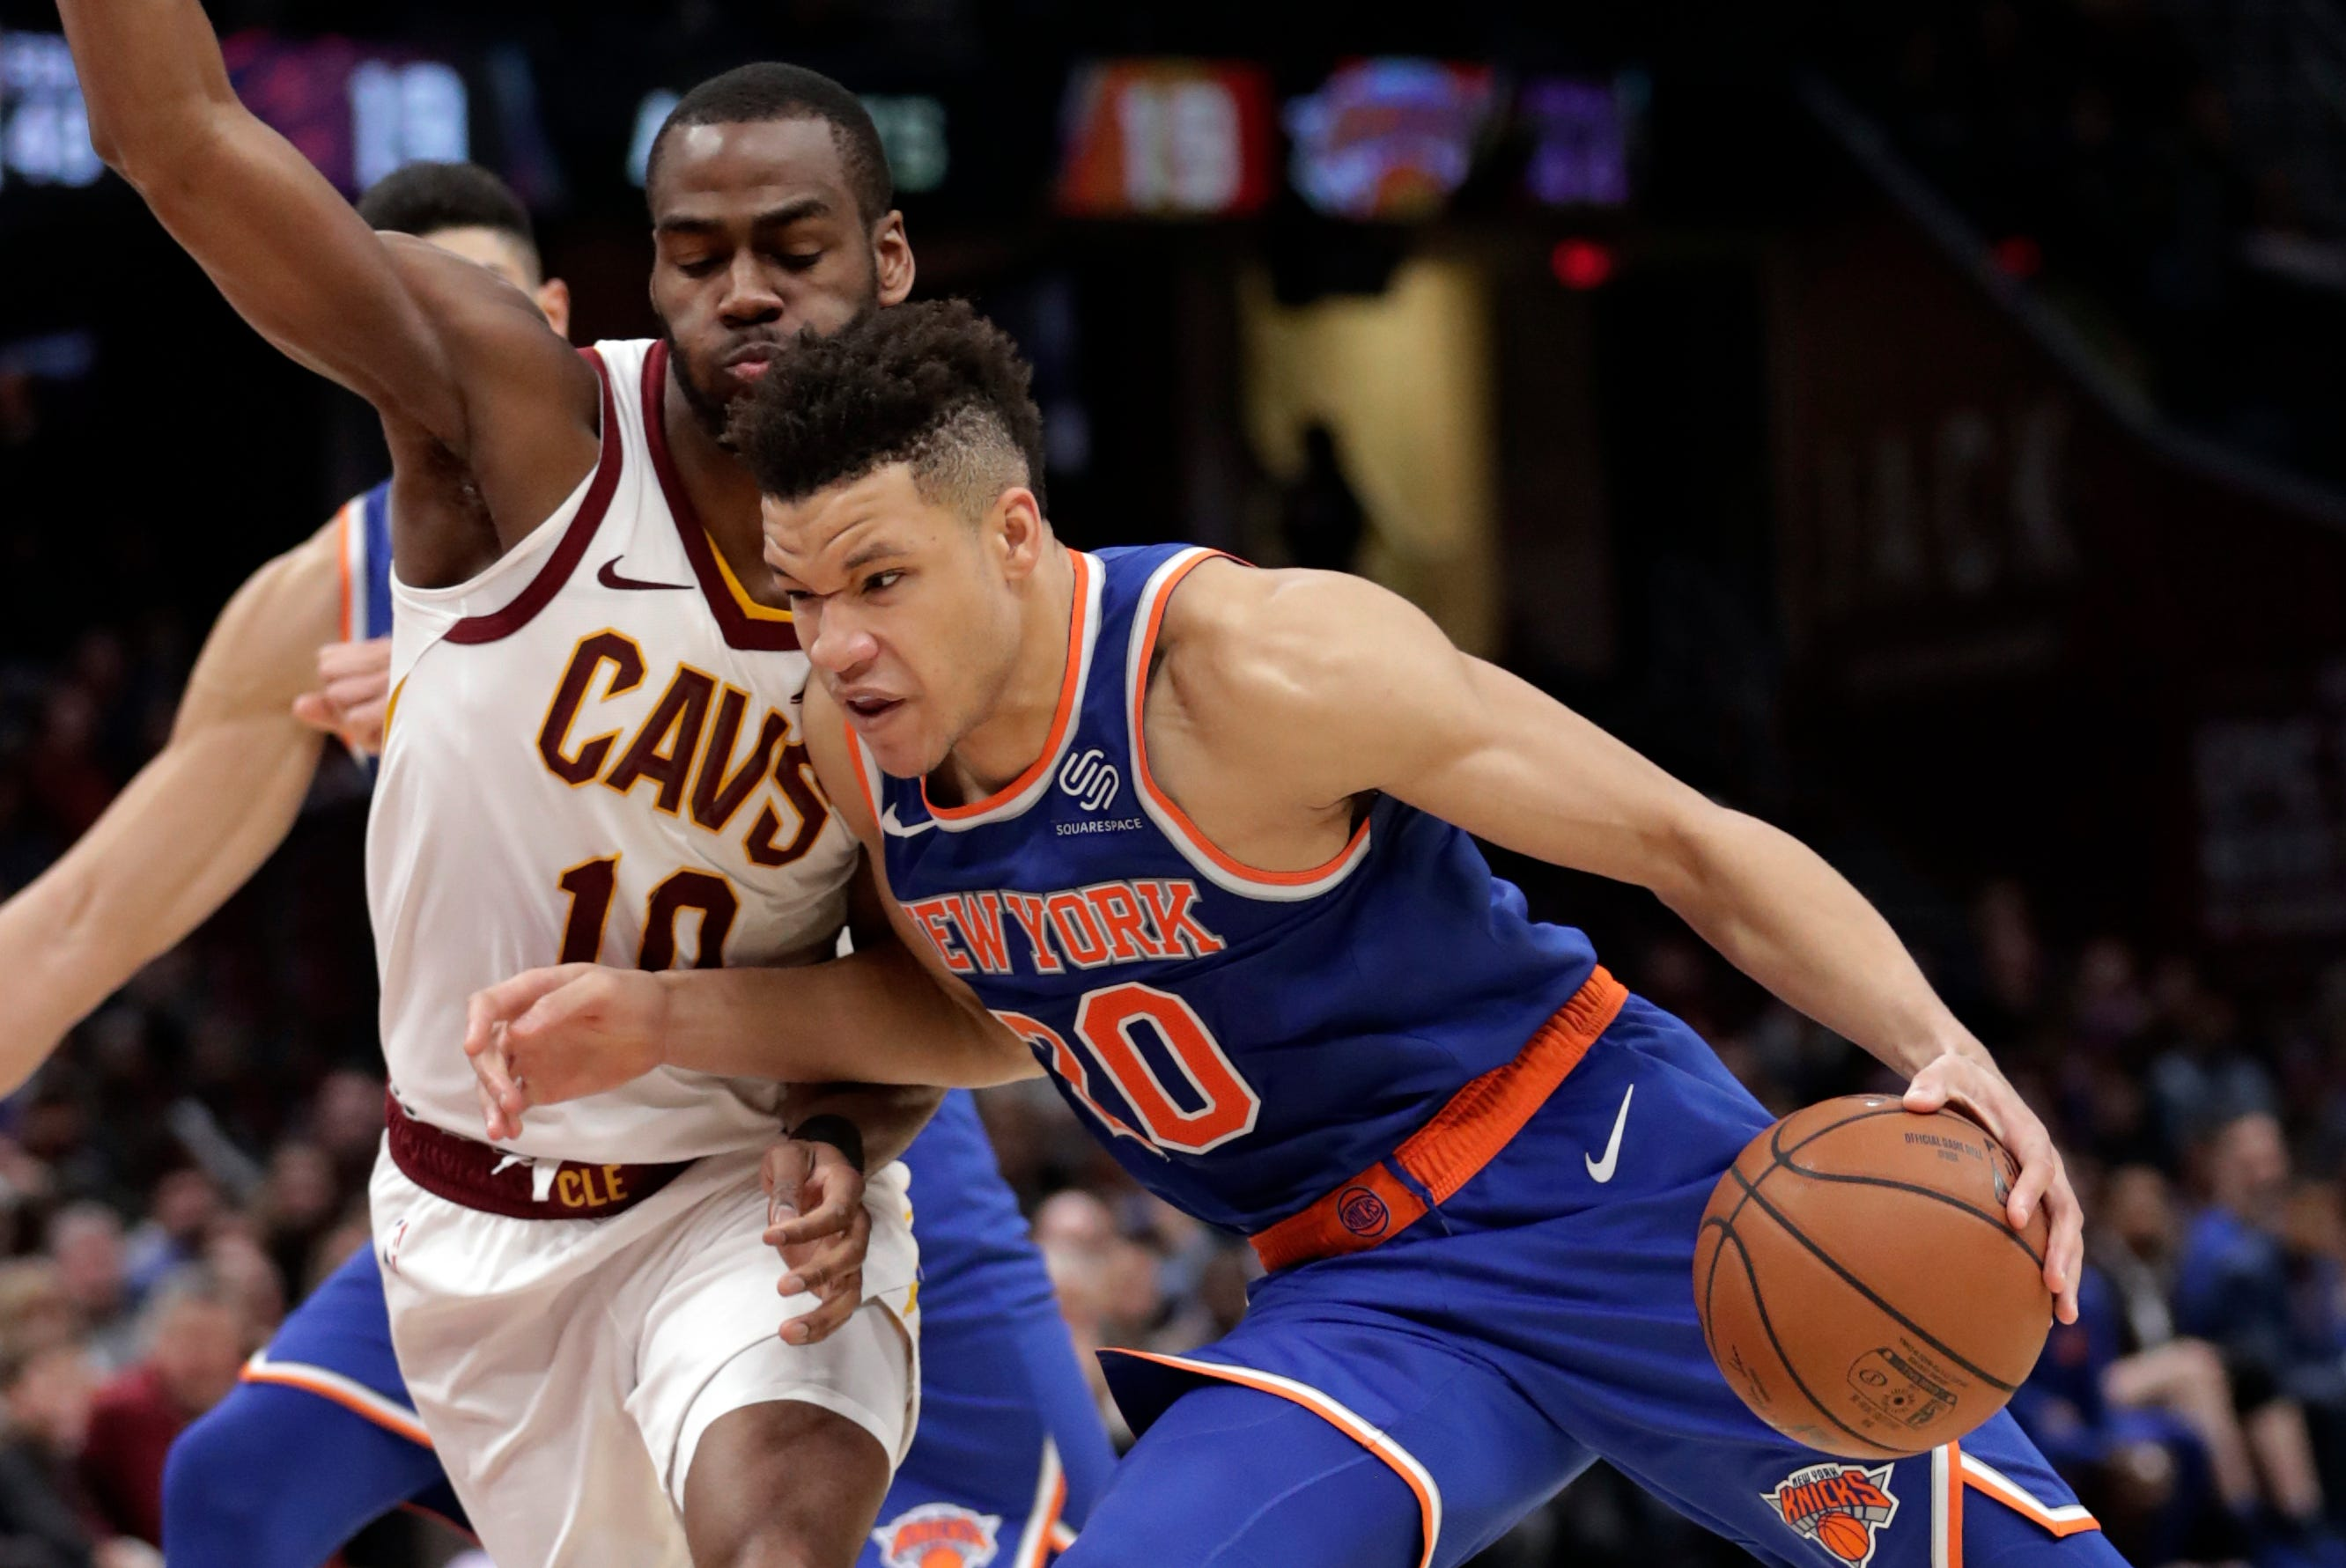 db8b9a21cba 2018-19 Cleveland Cavaliers Season Preview  Life After LeBron James ...